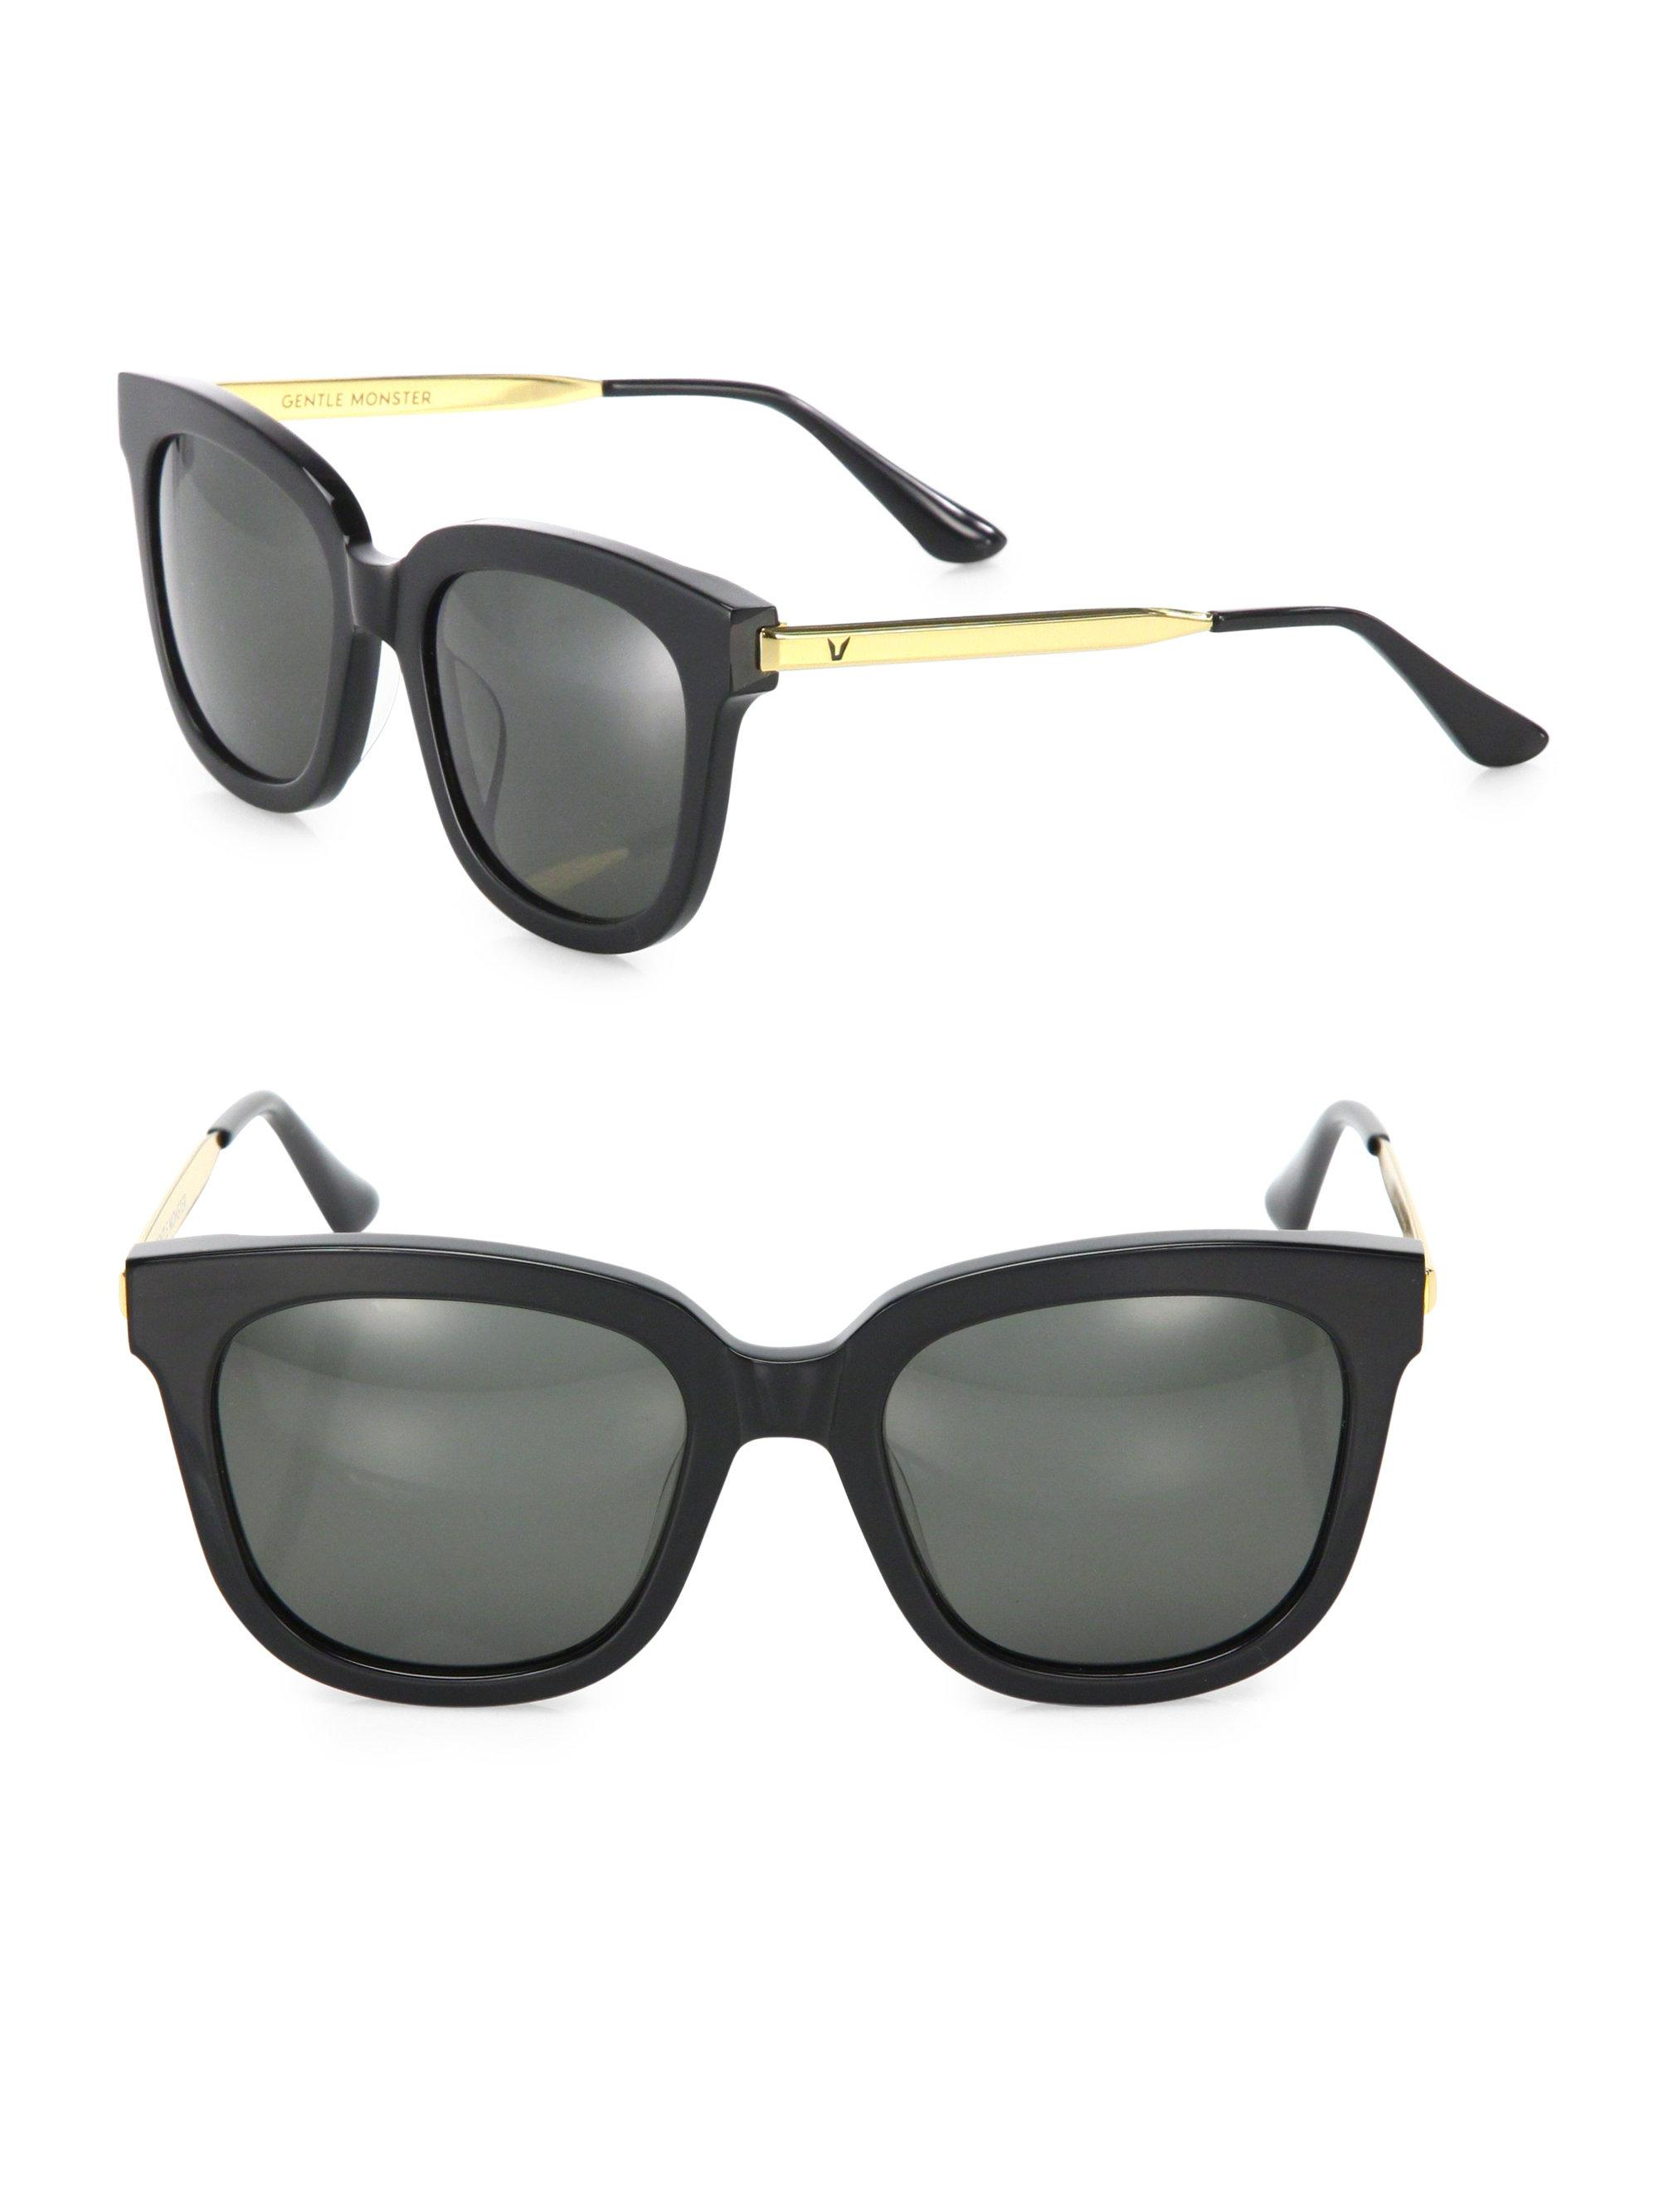 94e21c24ee4f Lyst - Gentle Monster Absente 52mm Square Sunglasses in Black